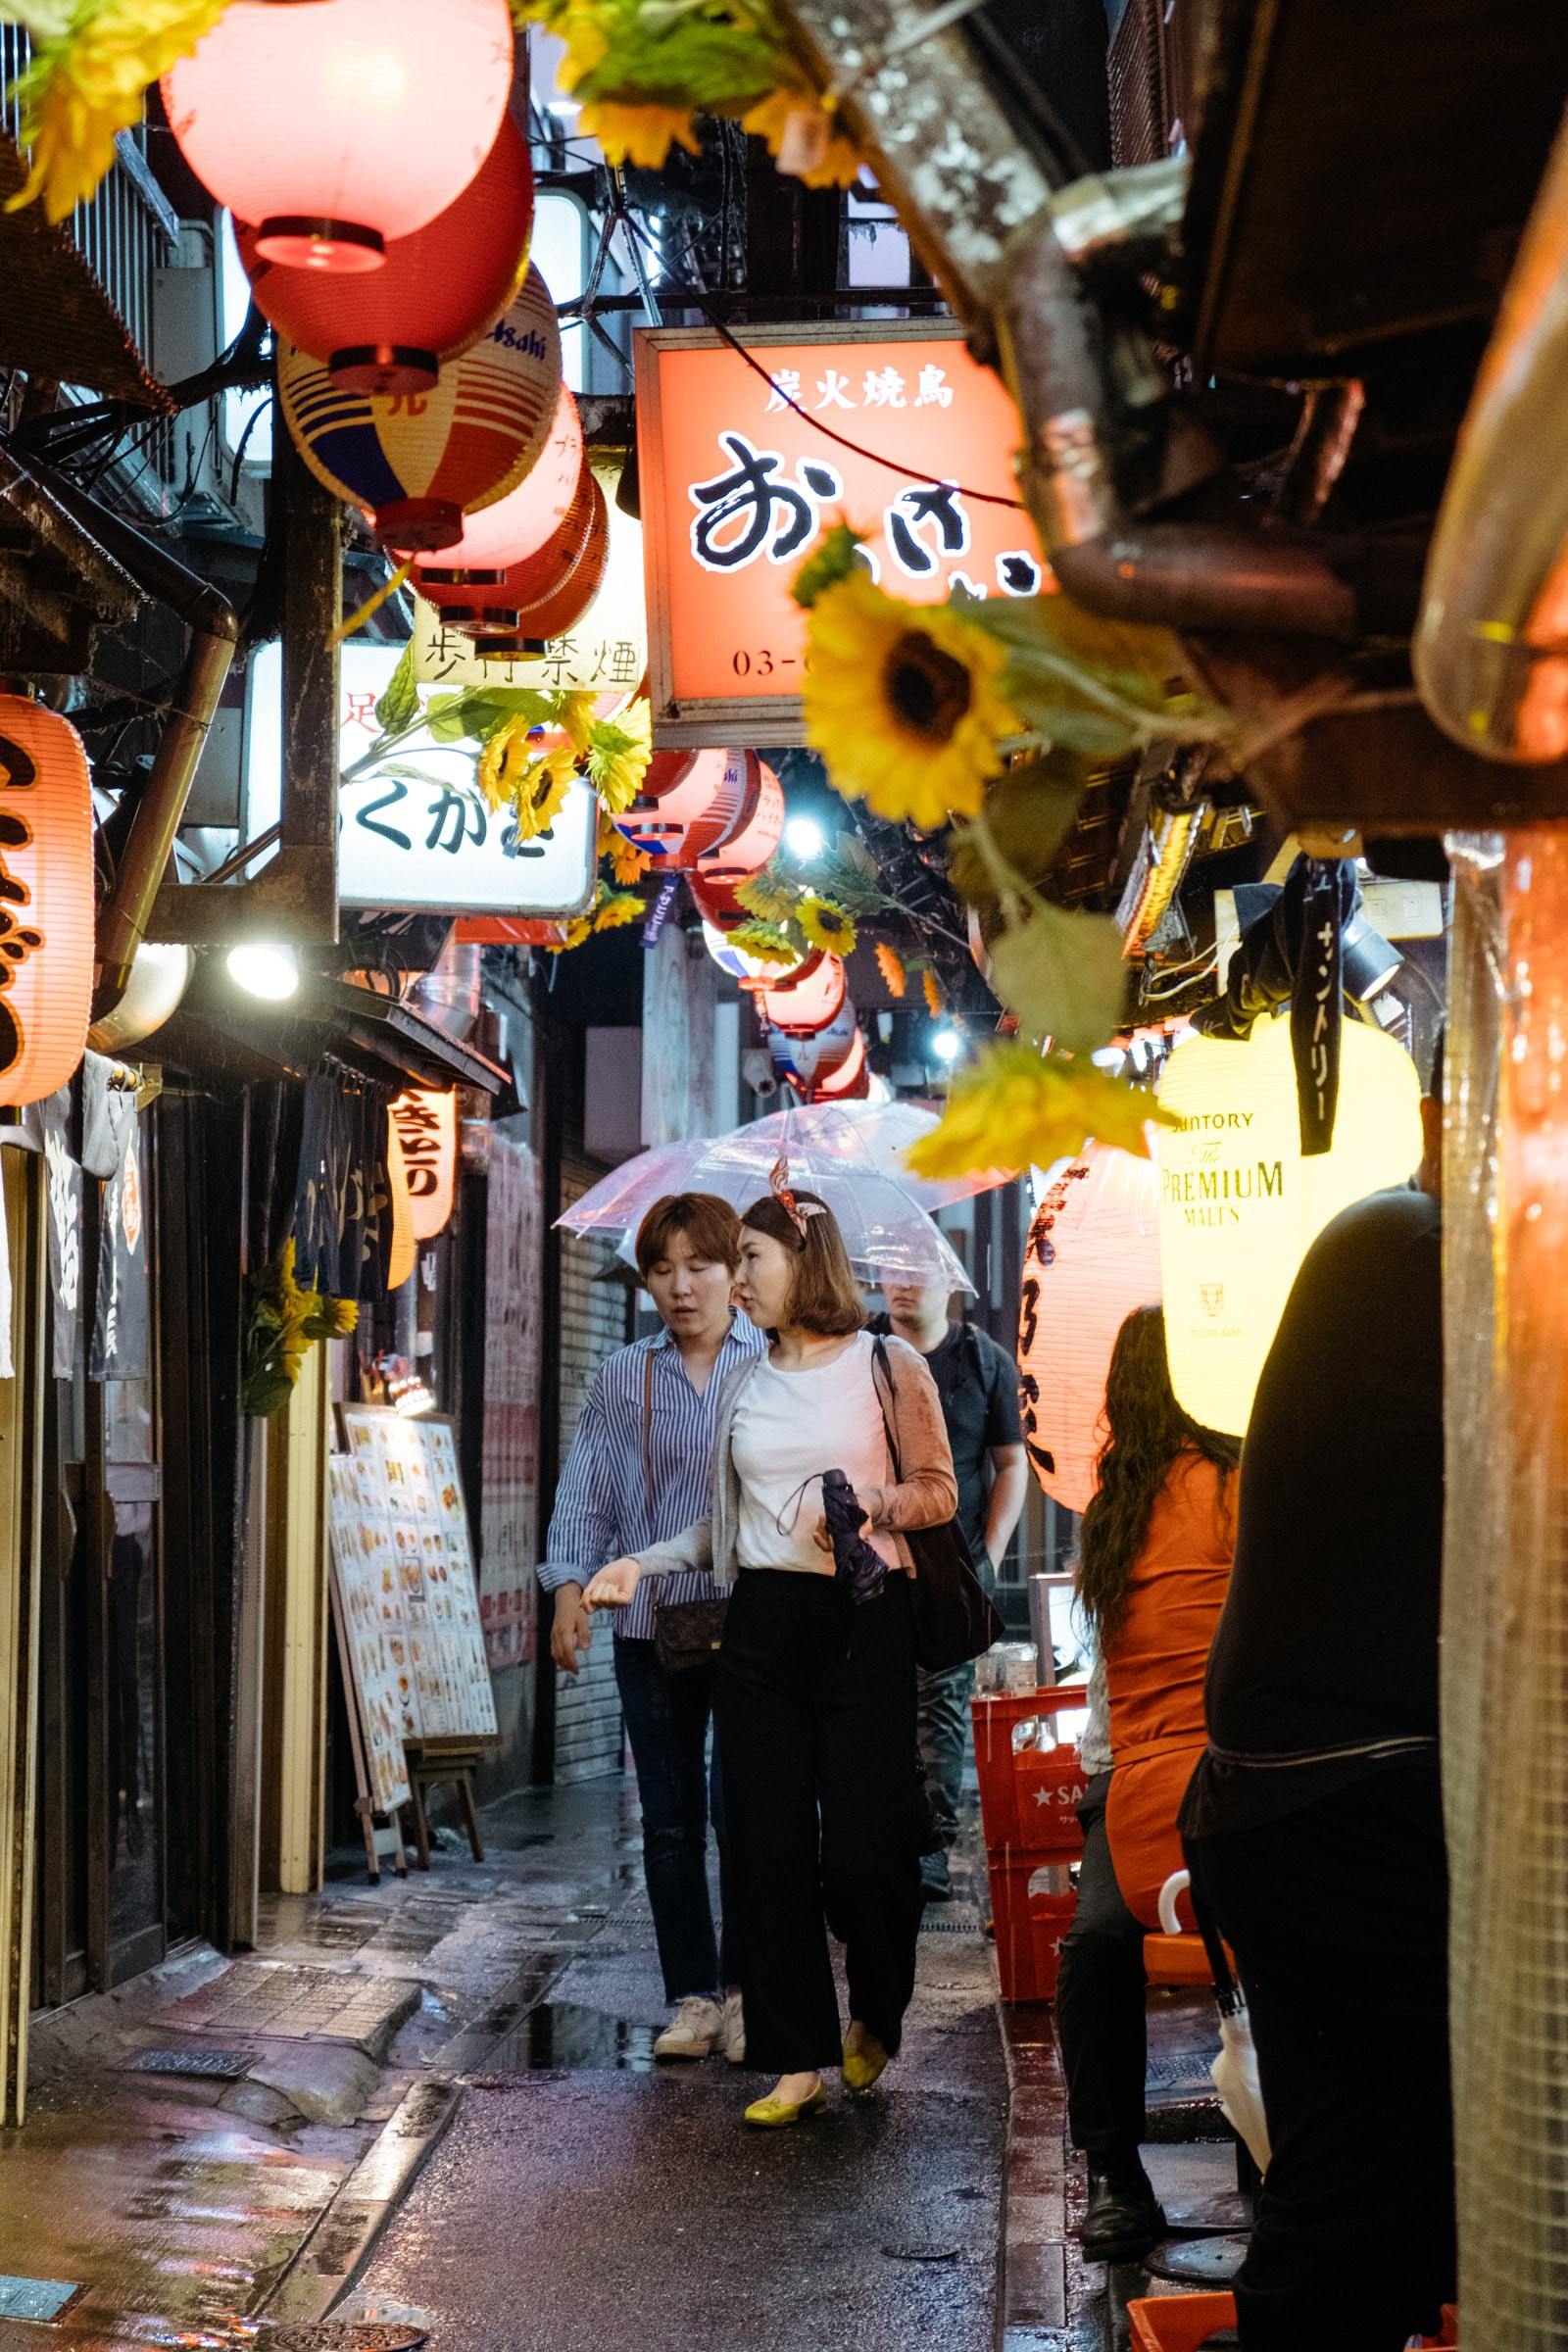 A Guide to Tokyo's Piss Alley